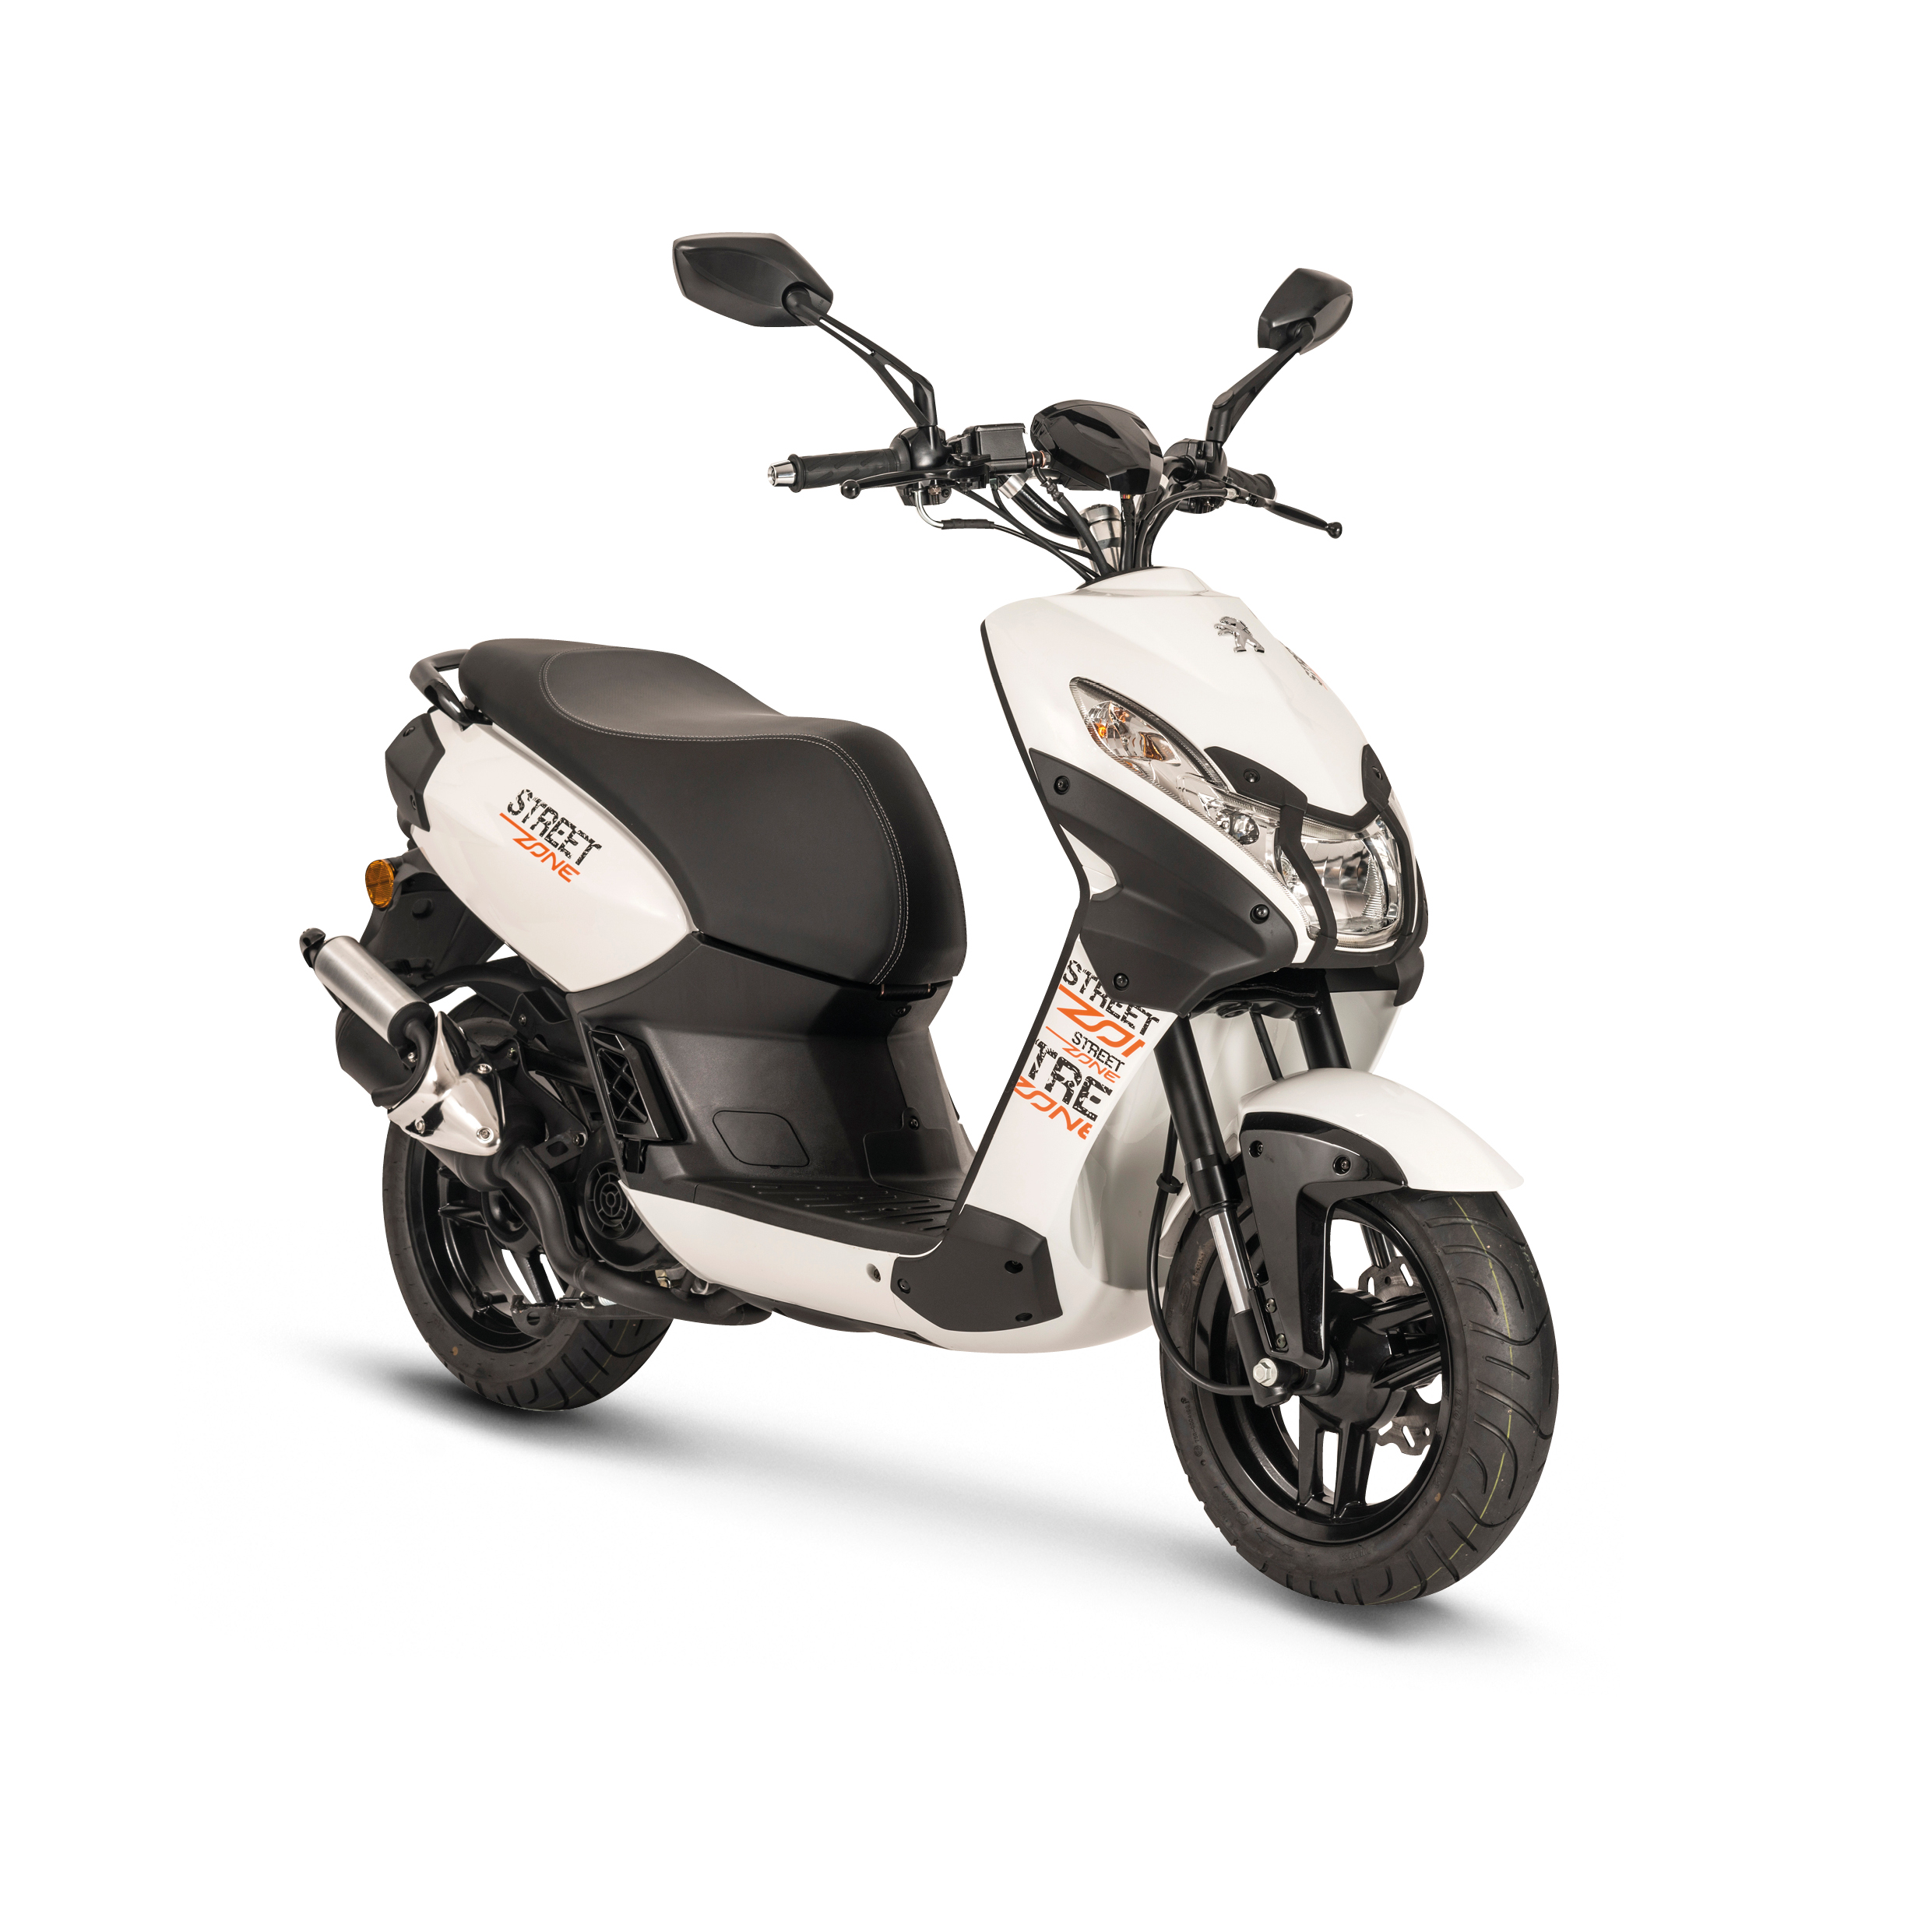 new peugeot streetzone scooter visordown. Black Bedroom Furniture Sets. Home Design Ideas